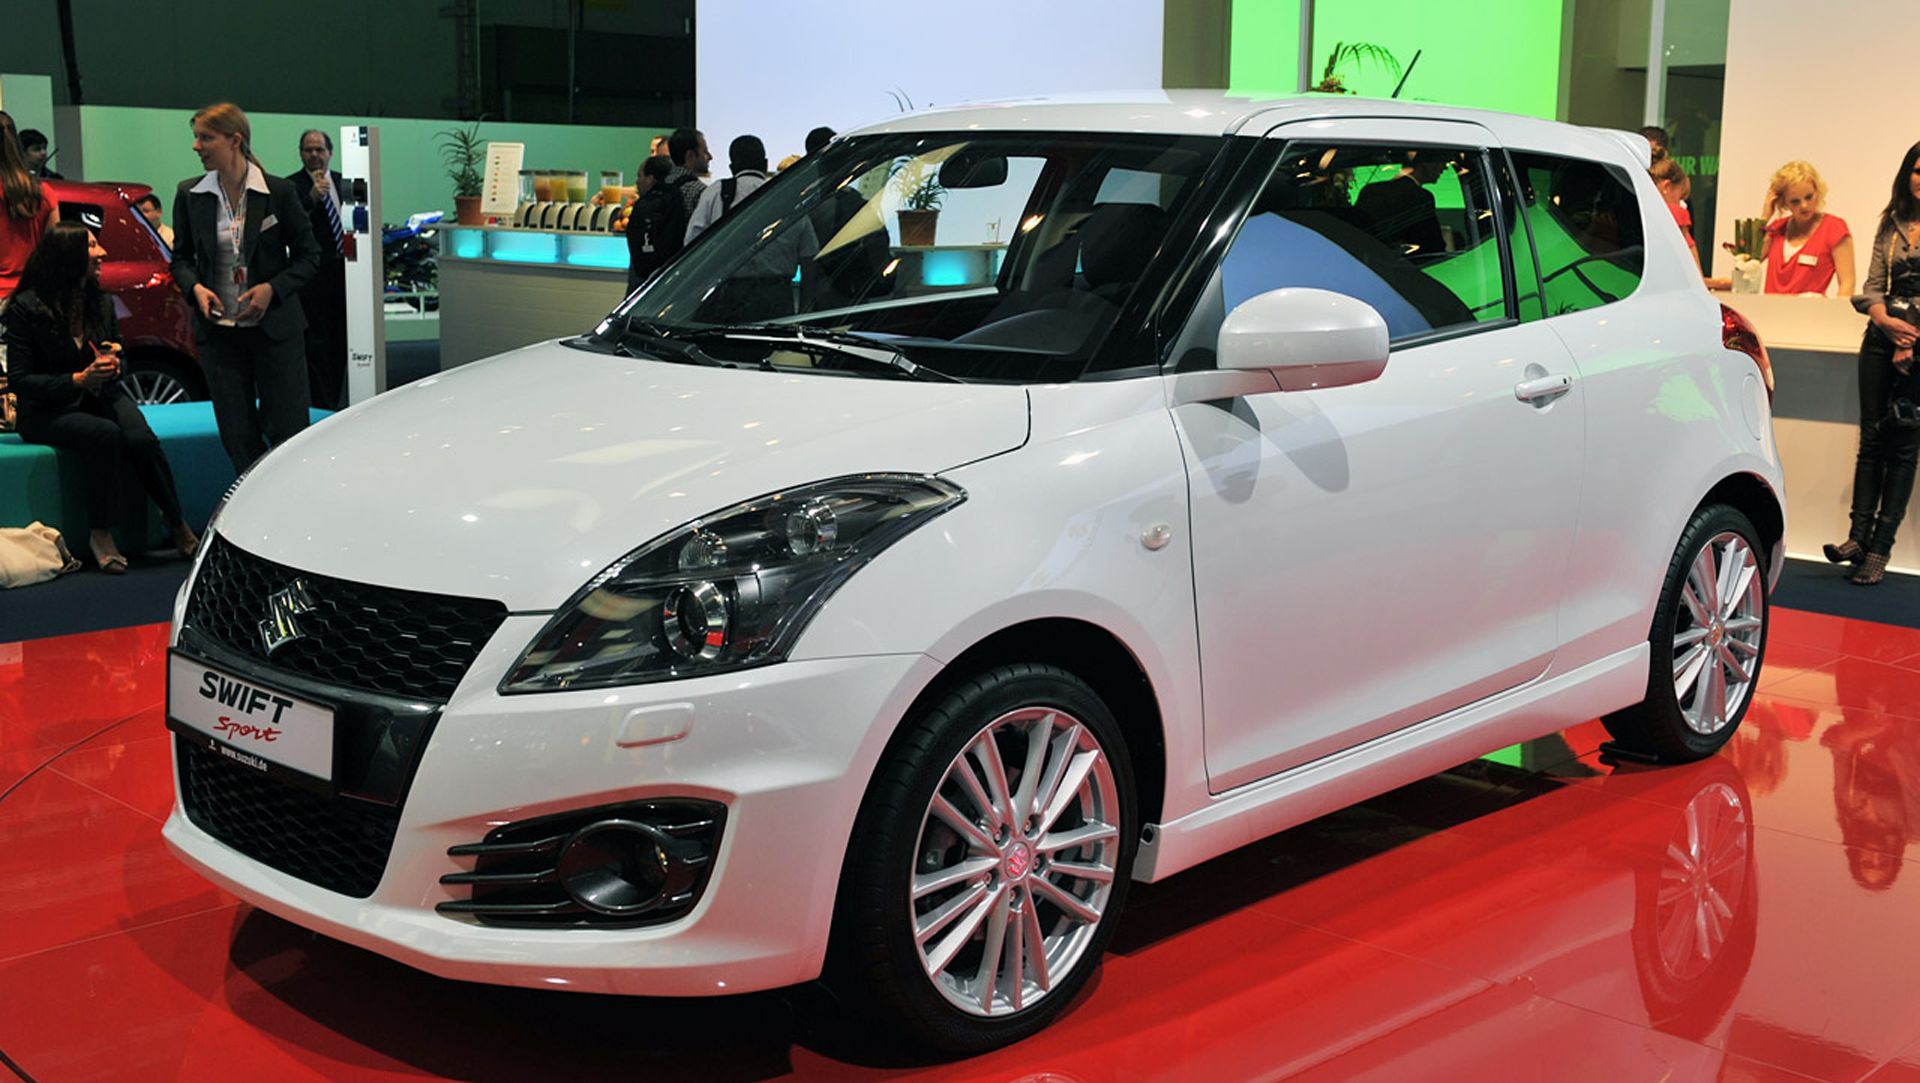 New model of maruti swift with sport look having 2 doors starting price base model lac by december it s production has started booking from september